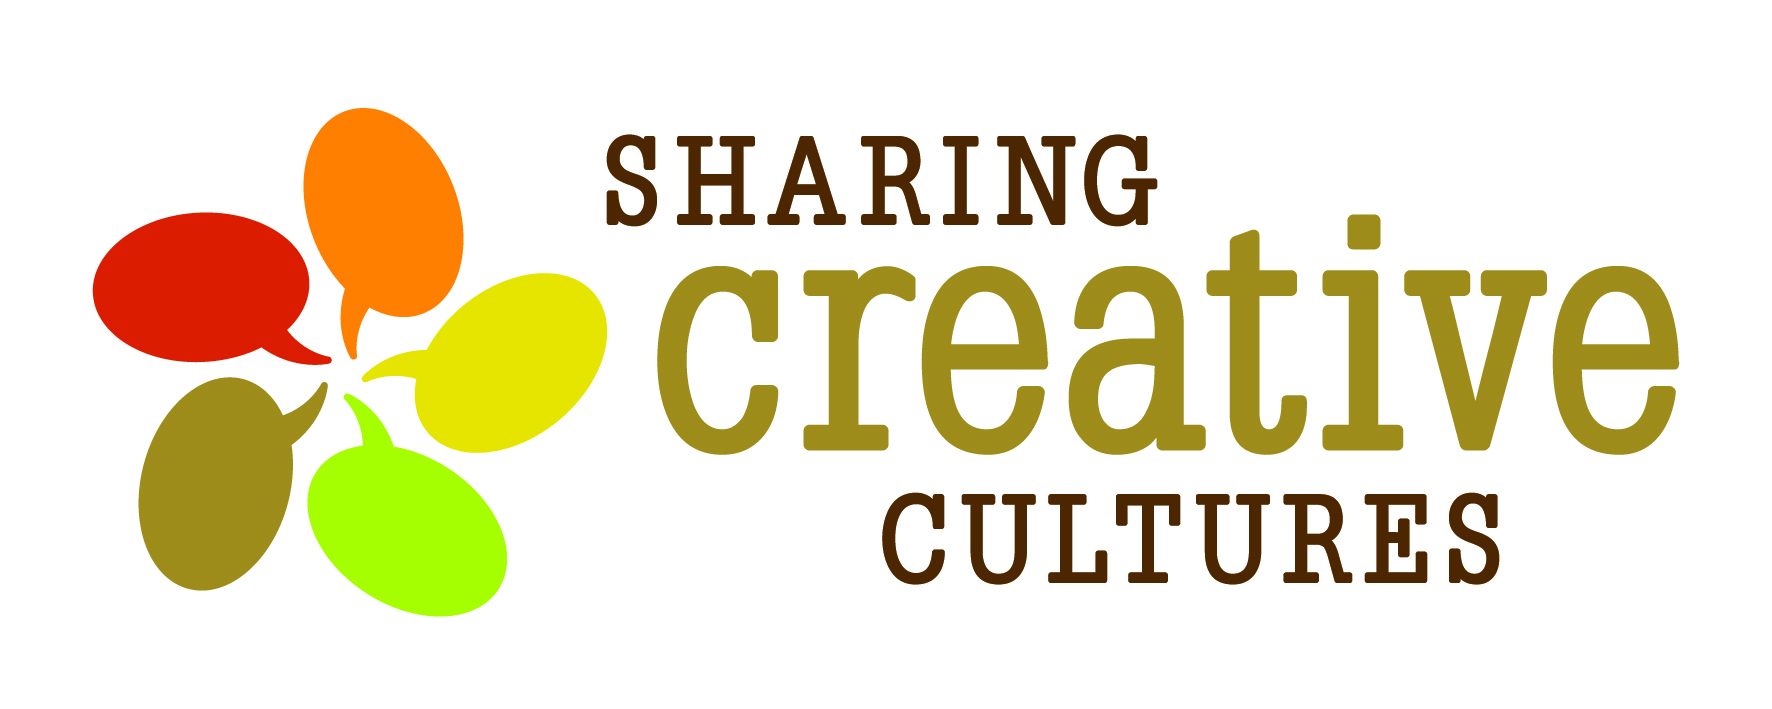 Sharing Creative Cultures logo